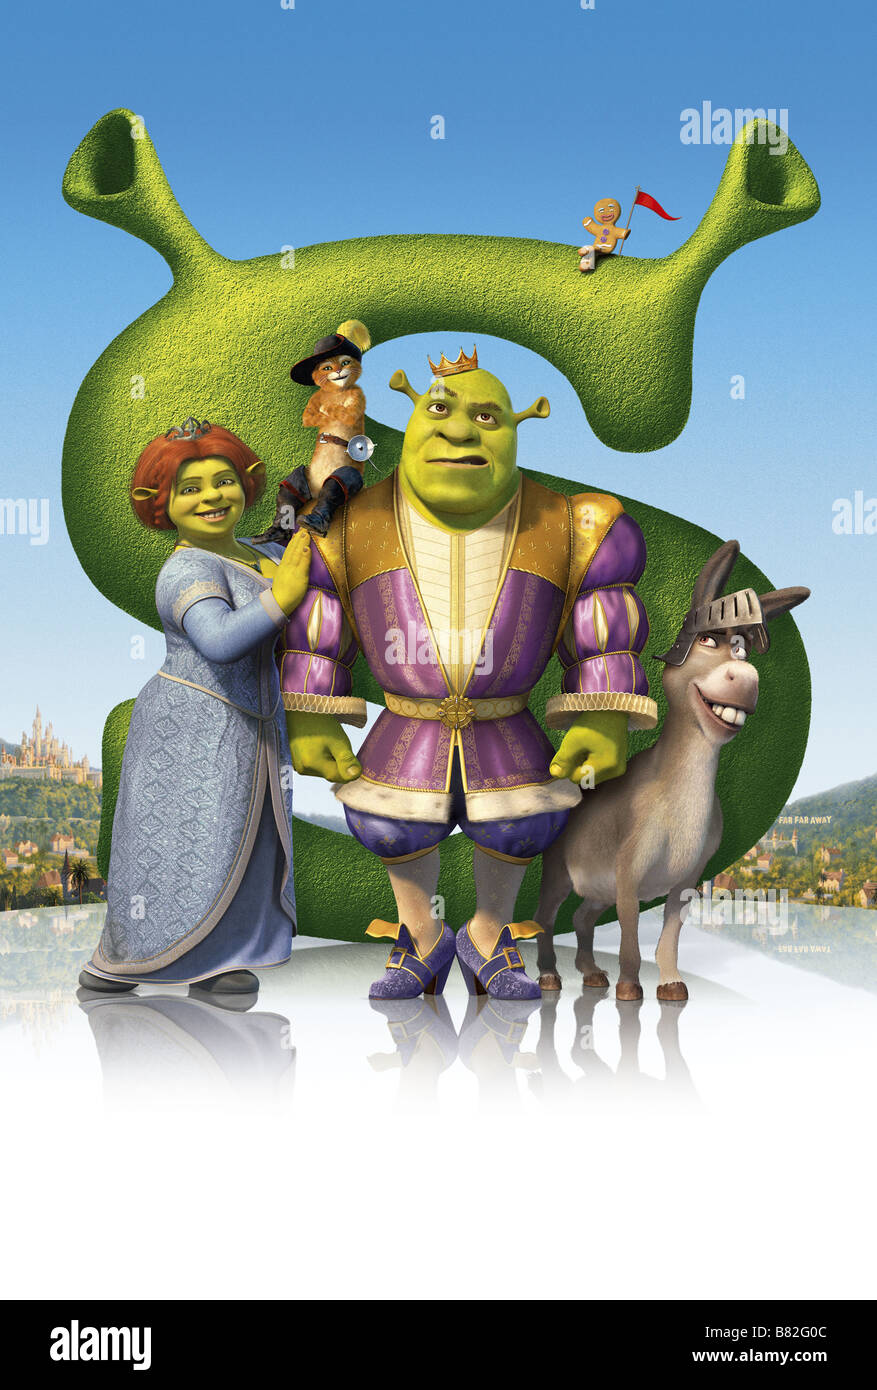 in the movie shrek directed by Shrek (2001) b sdg despite more flatulence humor than any movie since eddie murphy's nutty professor 2 , the young children in front of me at the screening of shrek were restless and bored.